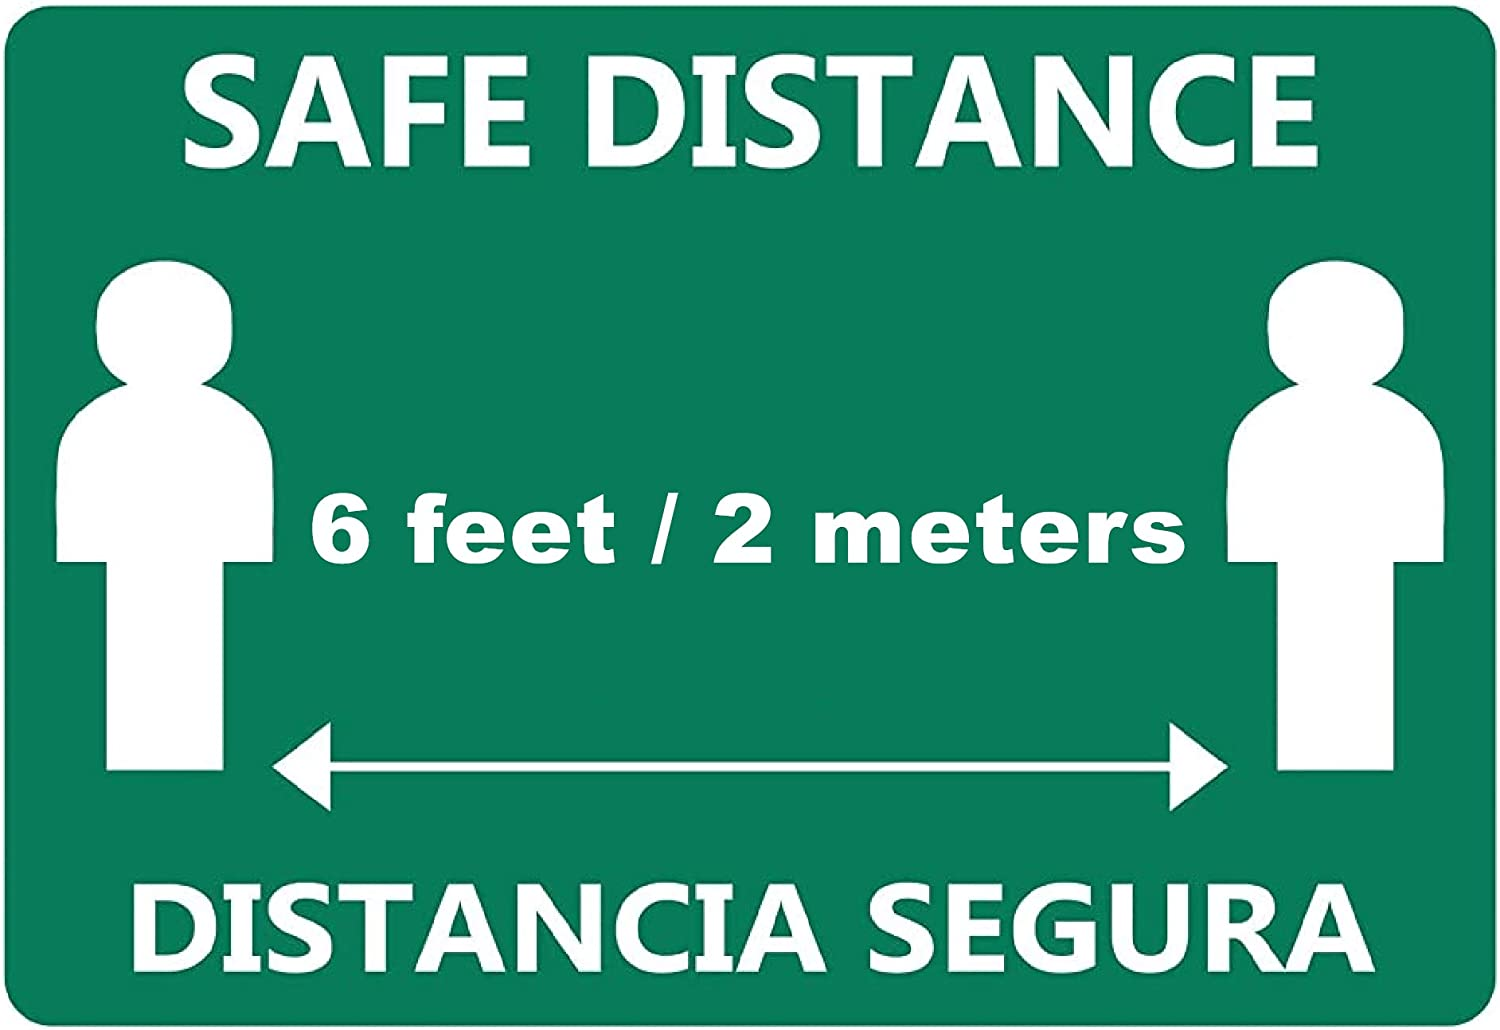 Keep Social Distance Sign 177.8/×254mm Minimum Safe Physical Distance Label 7x10/″ Case of 50 Self-Adhesive Vinyl PVC Sticker for Distant Socializing Practice Social Distancing Decal 1RHB03